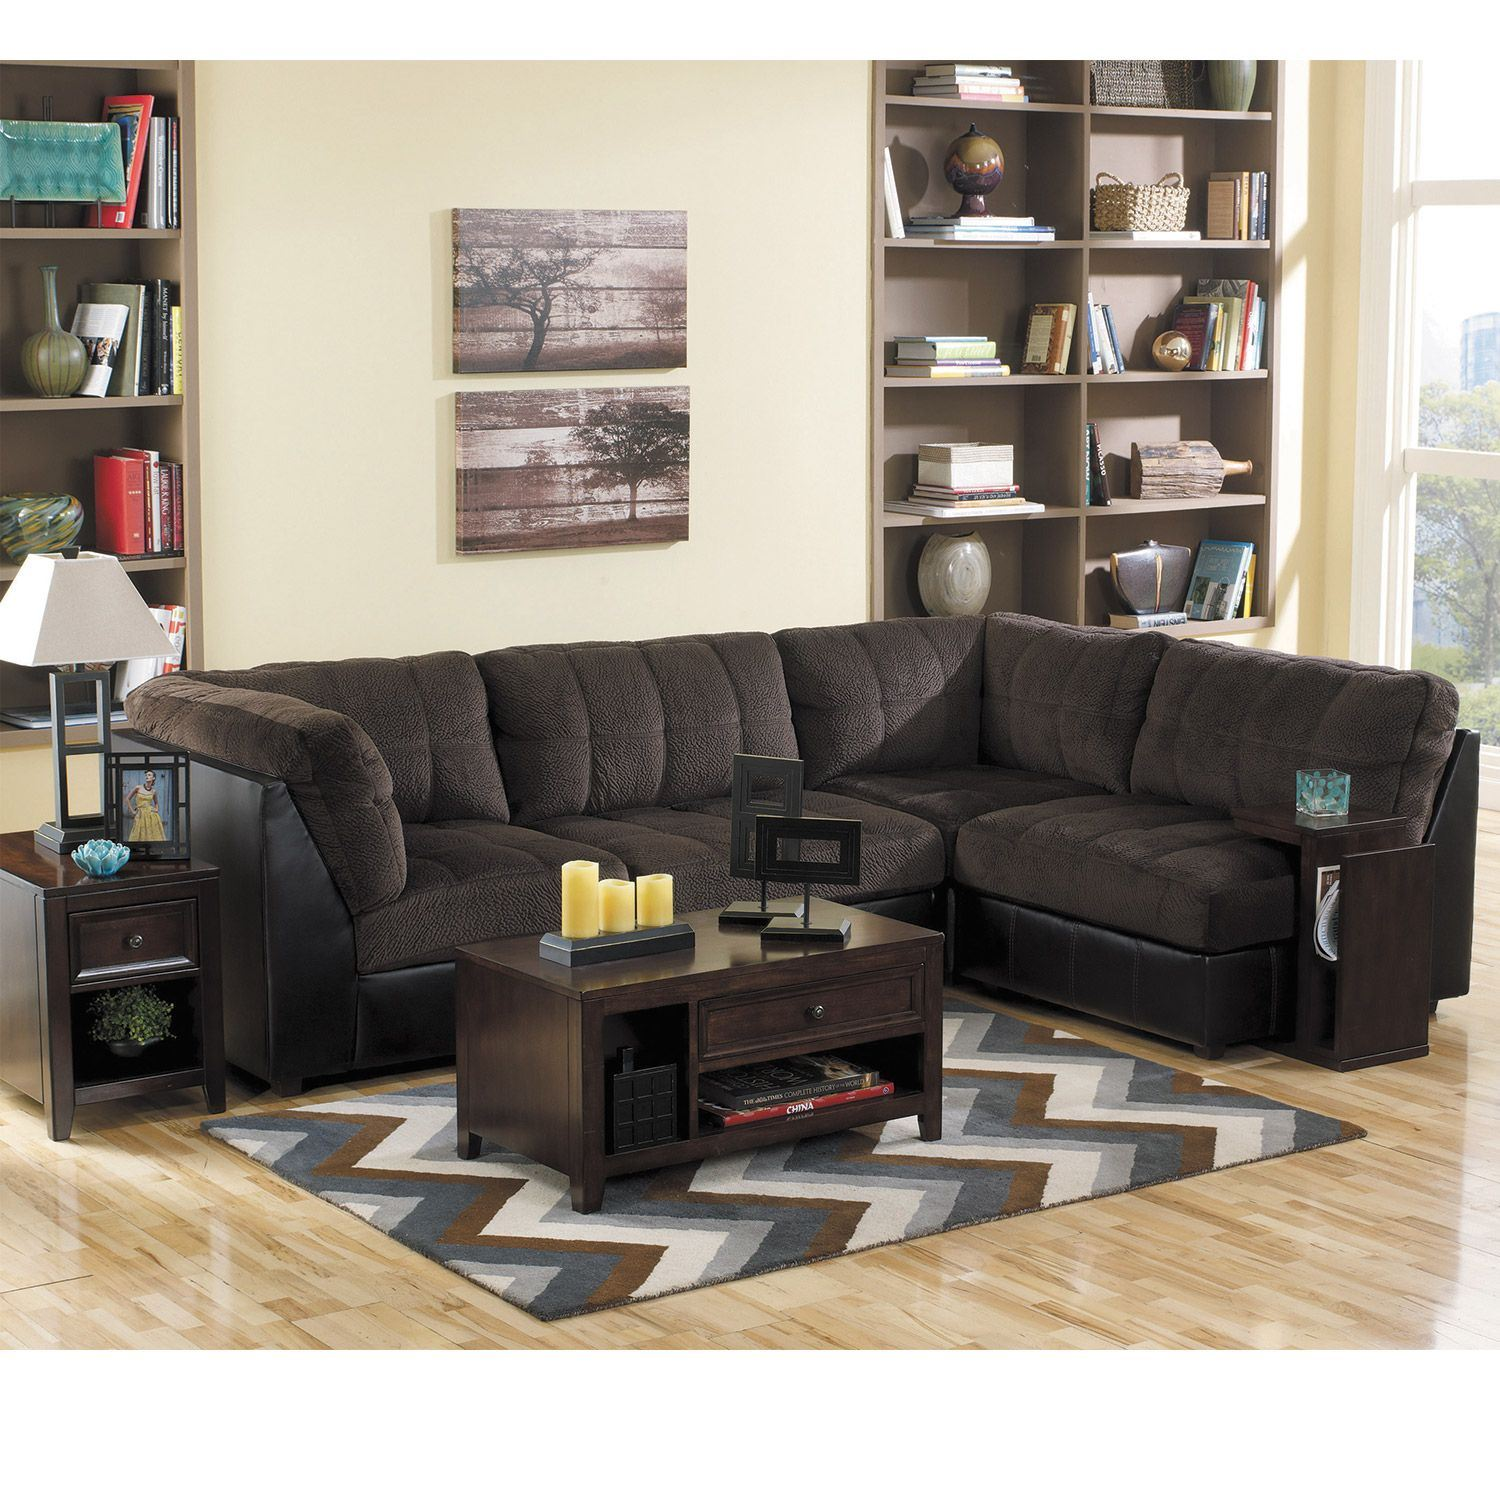 Discount living room furniture 100 buy living room chairs for Wholesale living room furniture sets